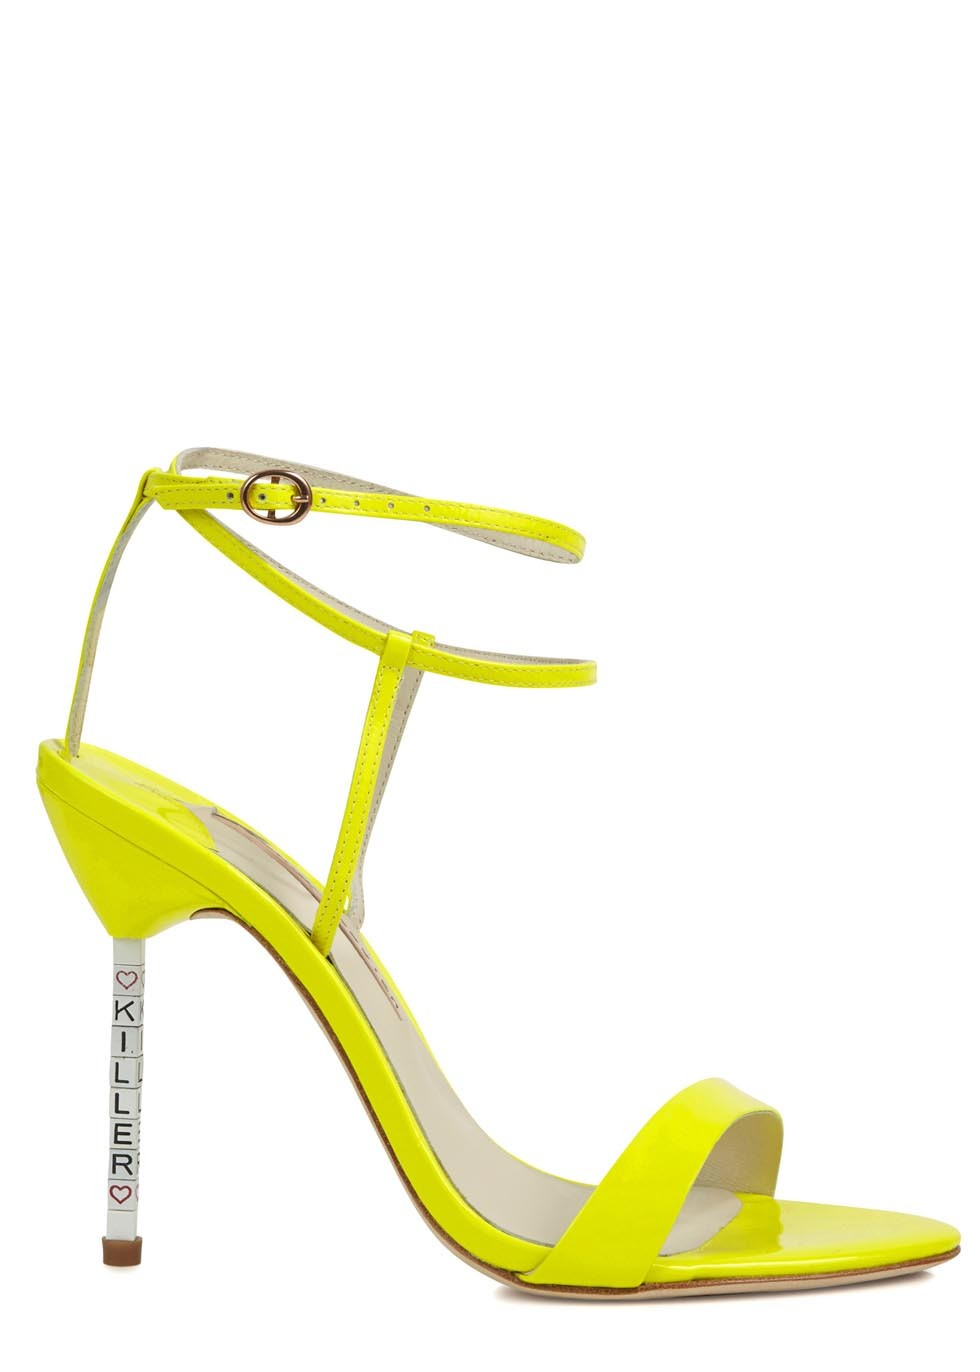 Sophia Webster Nicki Neon Yellow Patent Leather Sandals in ...